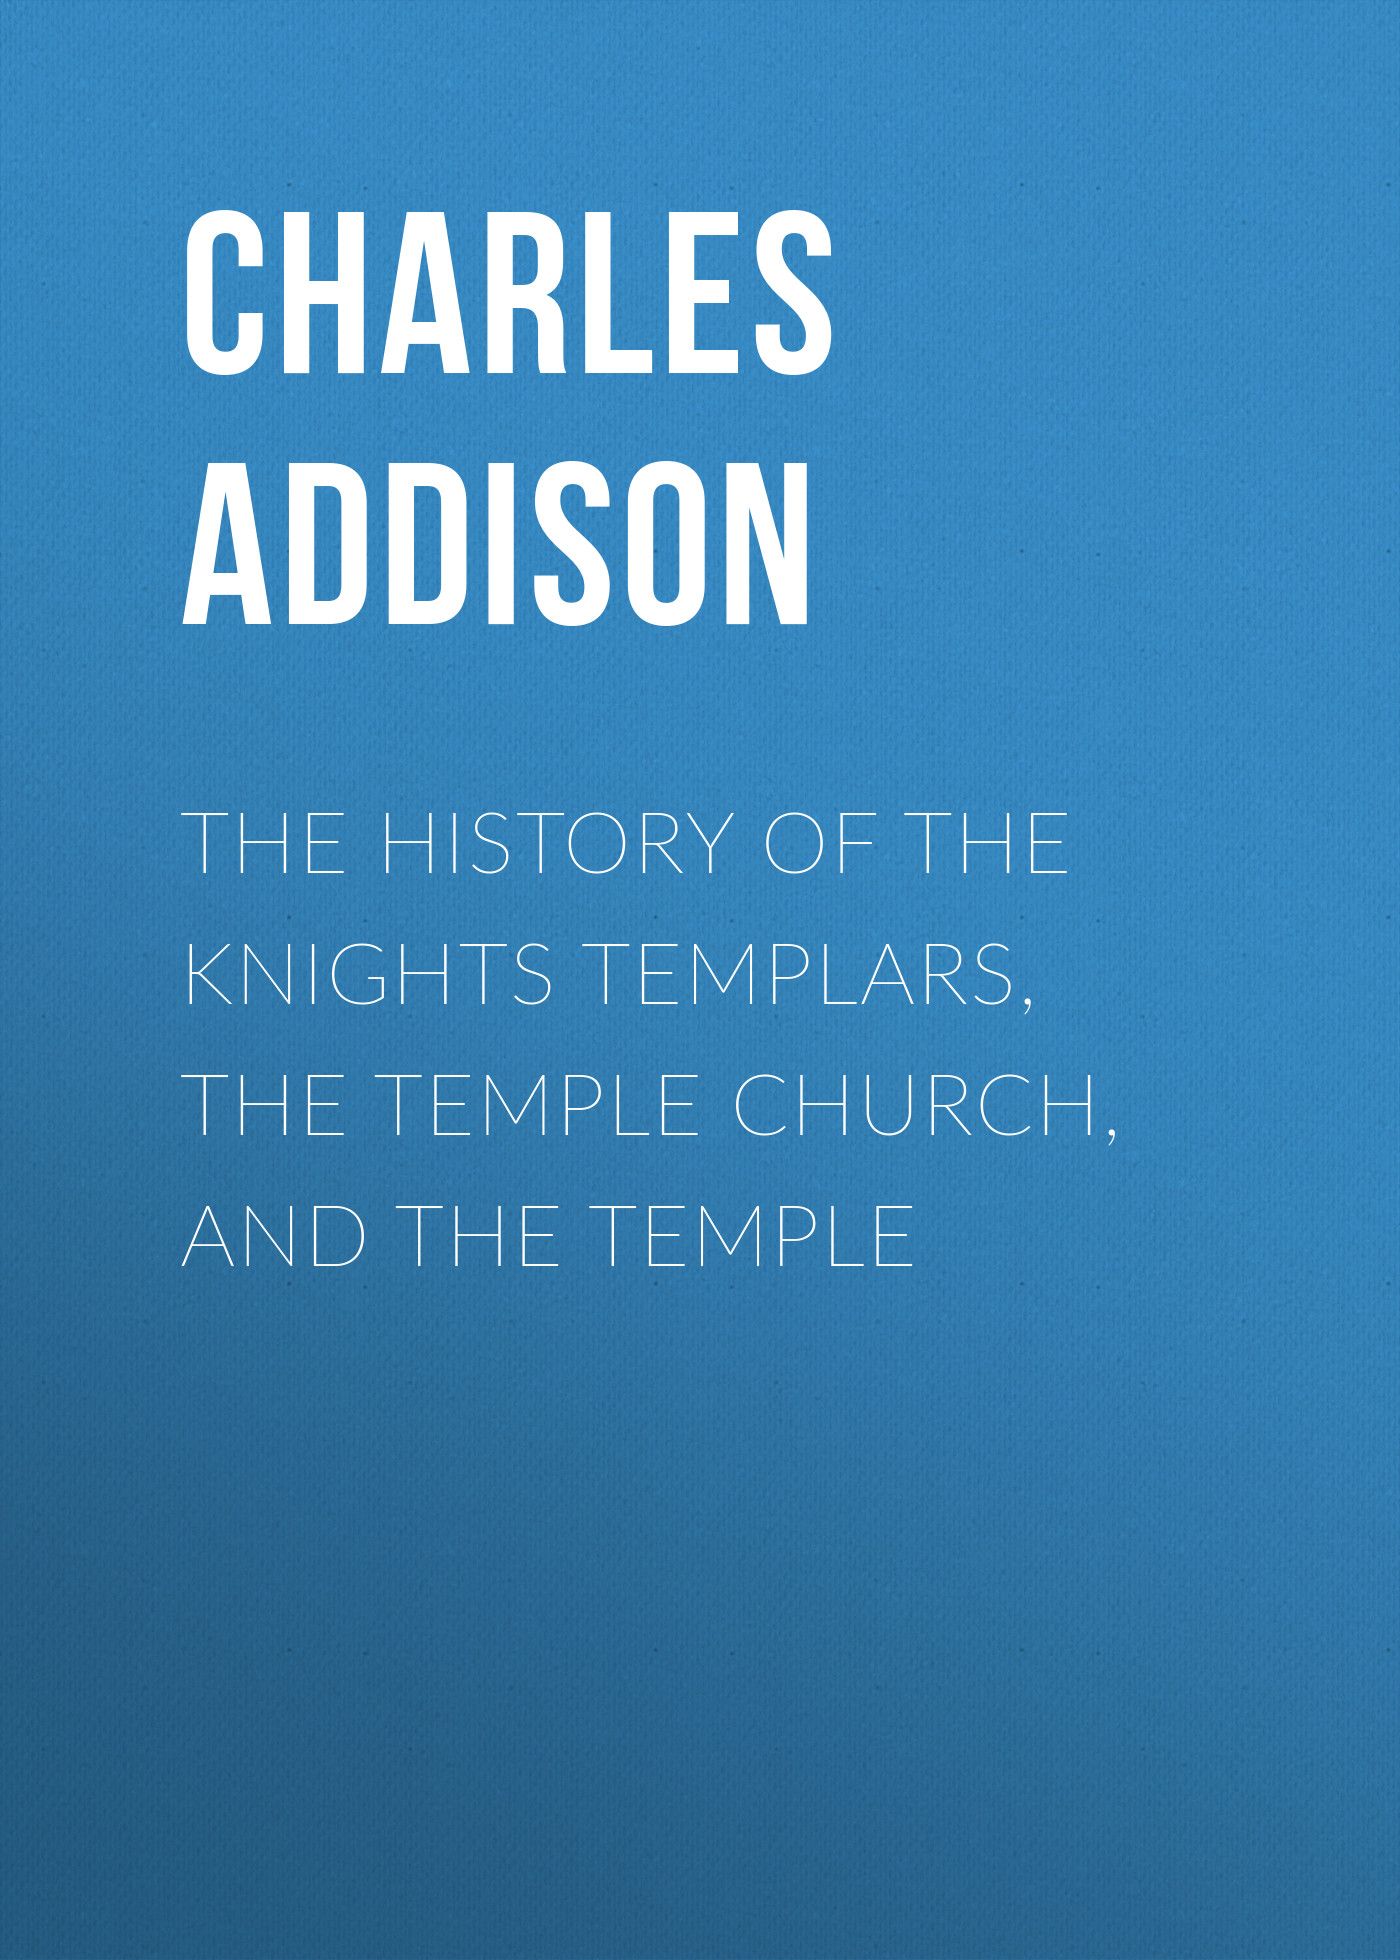 все цены на Addison Charles Greenstreet The History of the Knights Templars, the Temple Church, and the Temple